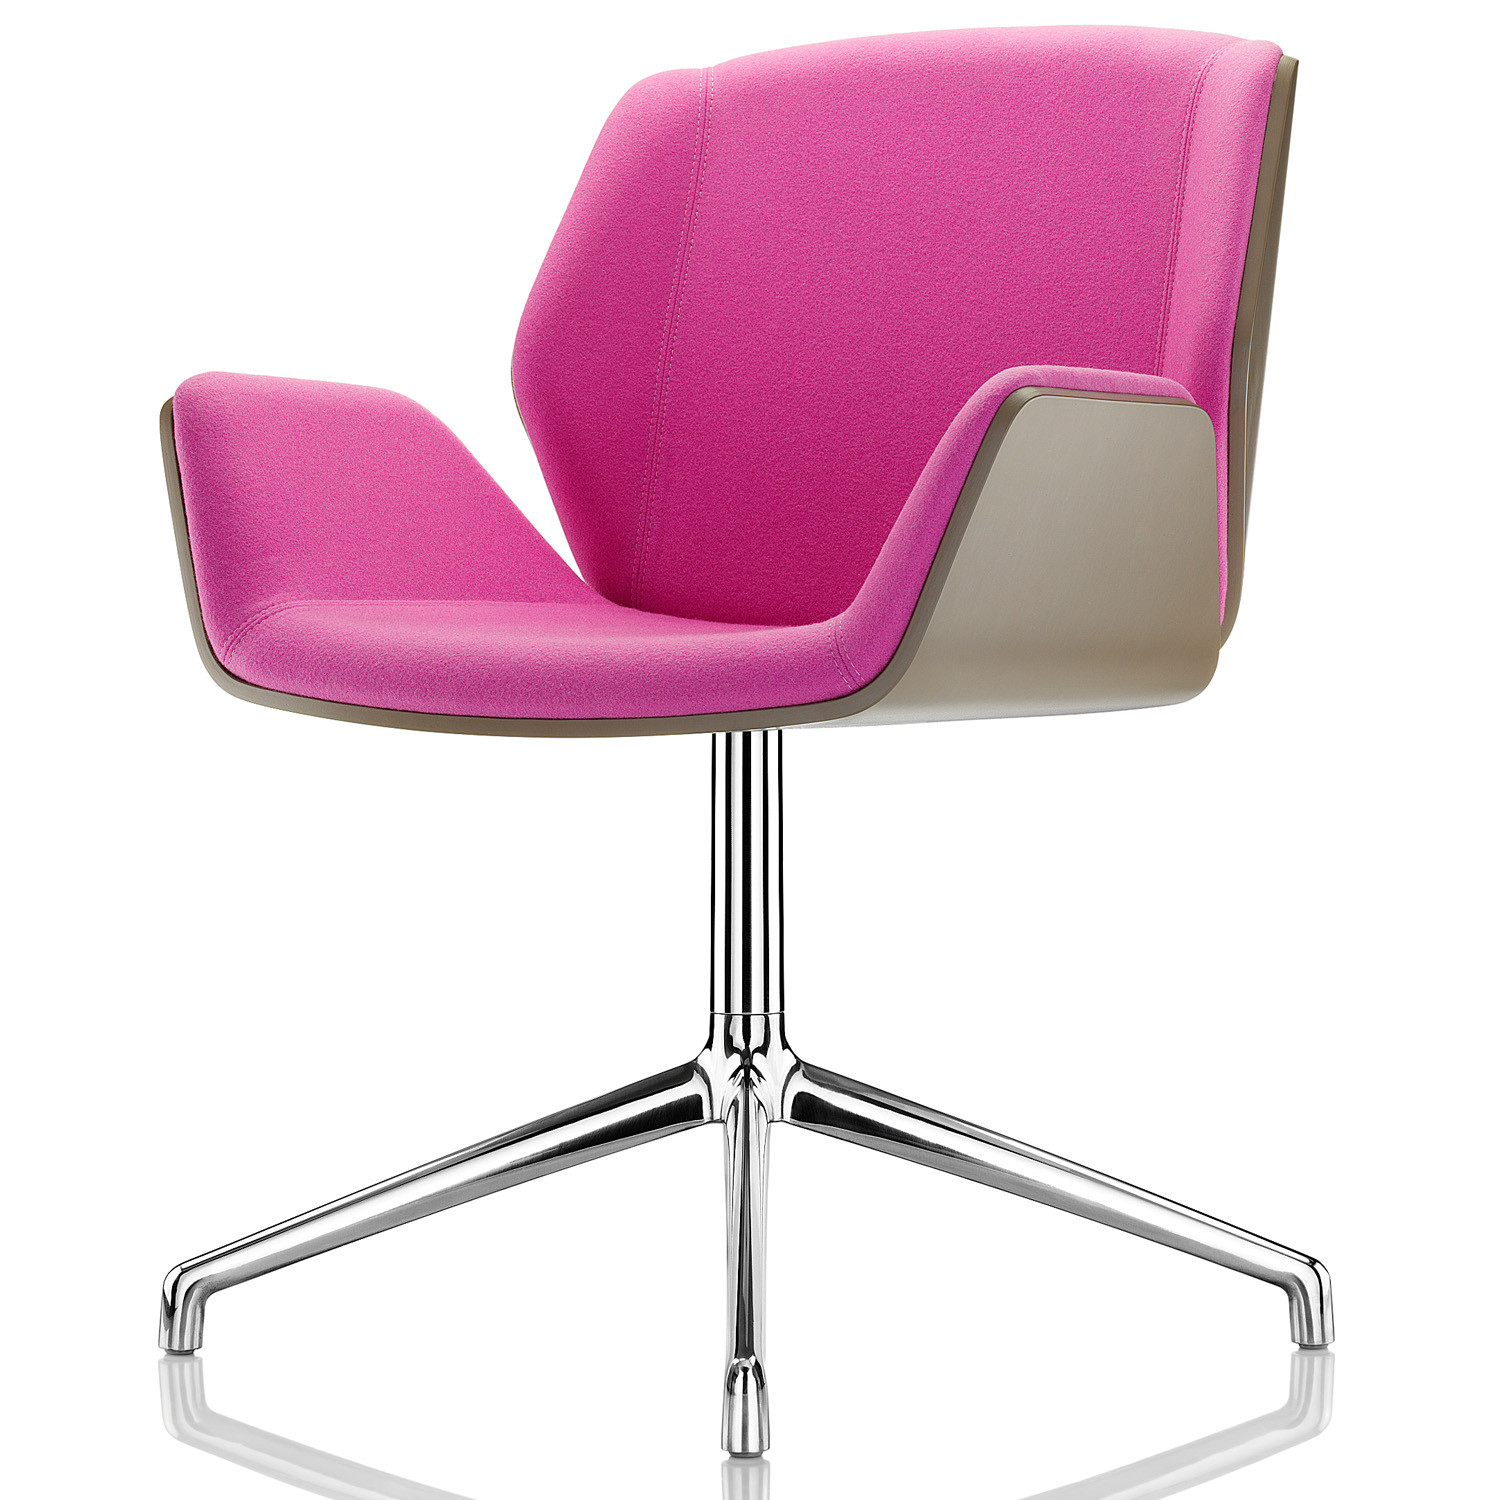 Kruze Chair by David Fox Design